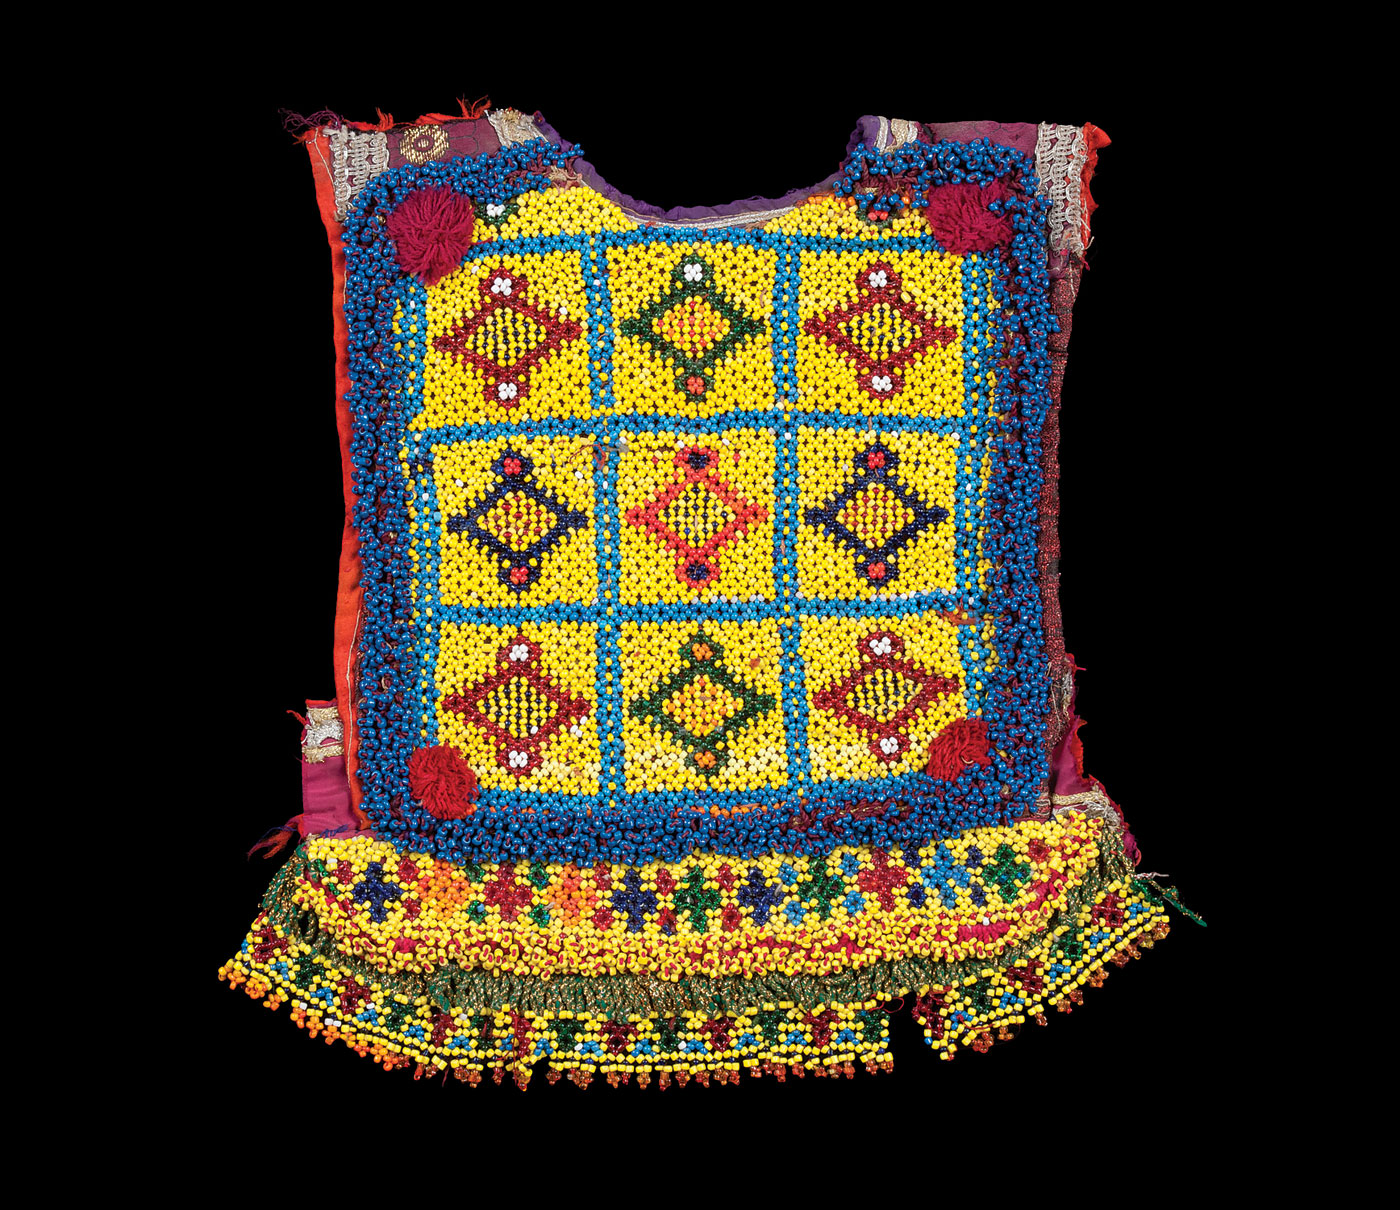 CHILD'S BLOUSE PANEL, northern Afghanistan, of cotton, glass beads, 38.0 x 32.7 centimeters, twentieth century.  Anne and Bill Frej Collection.